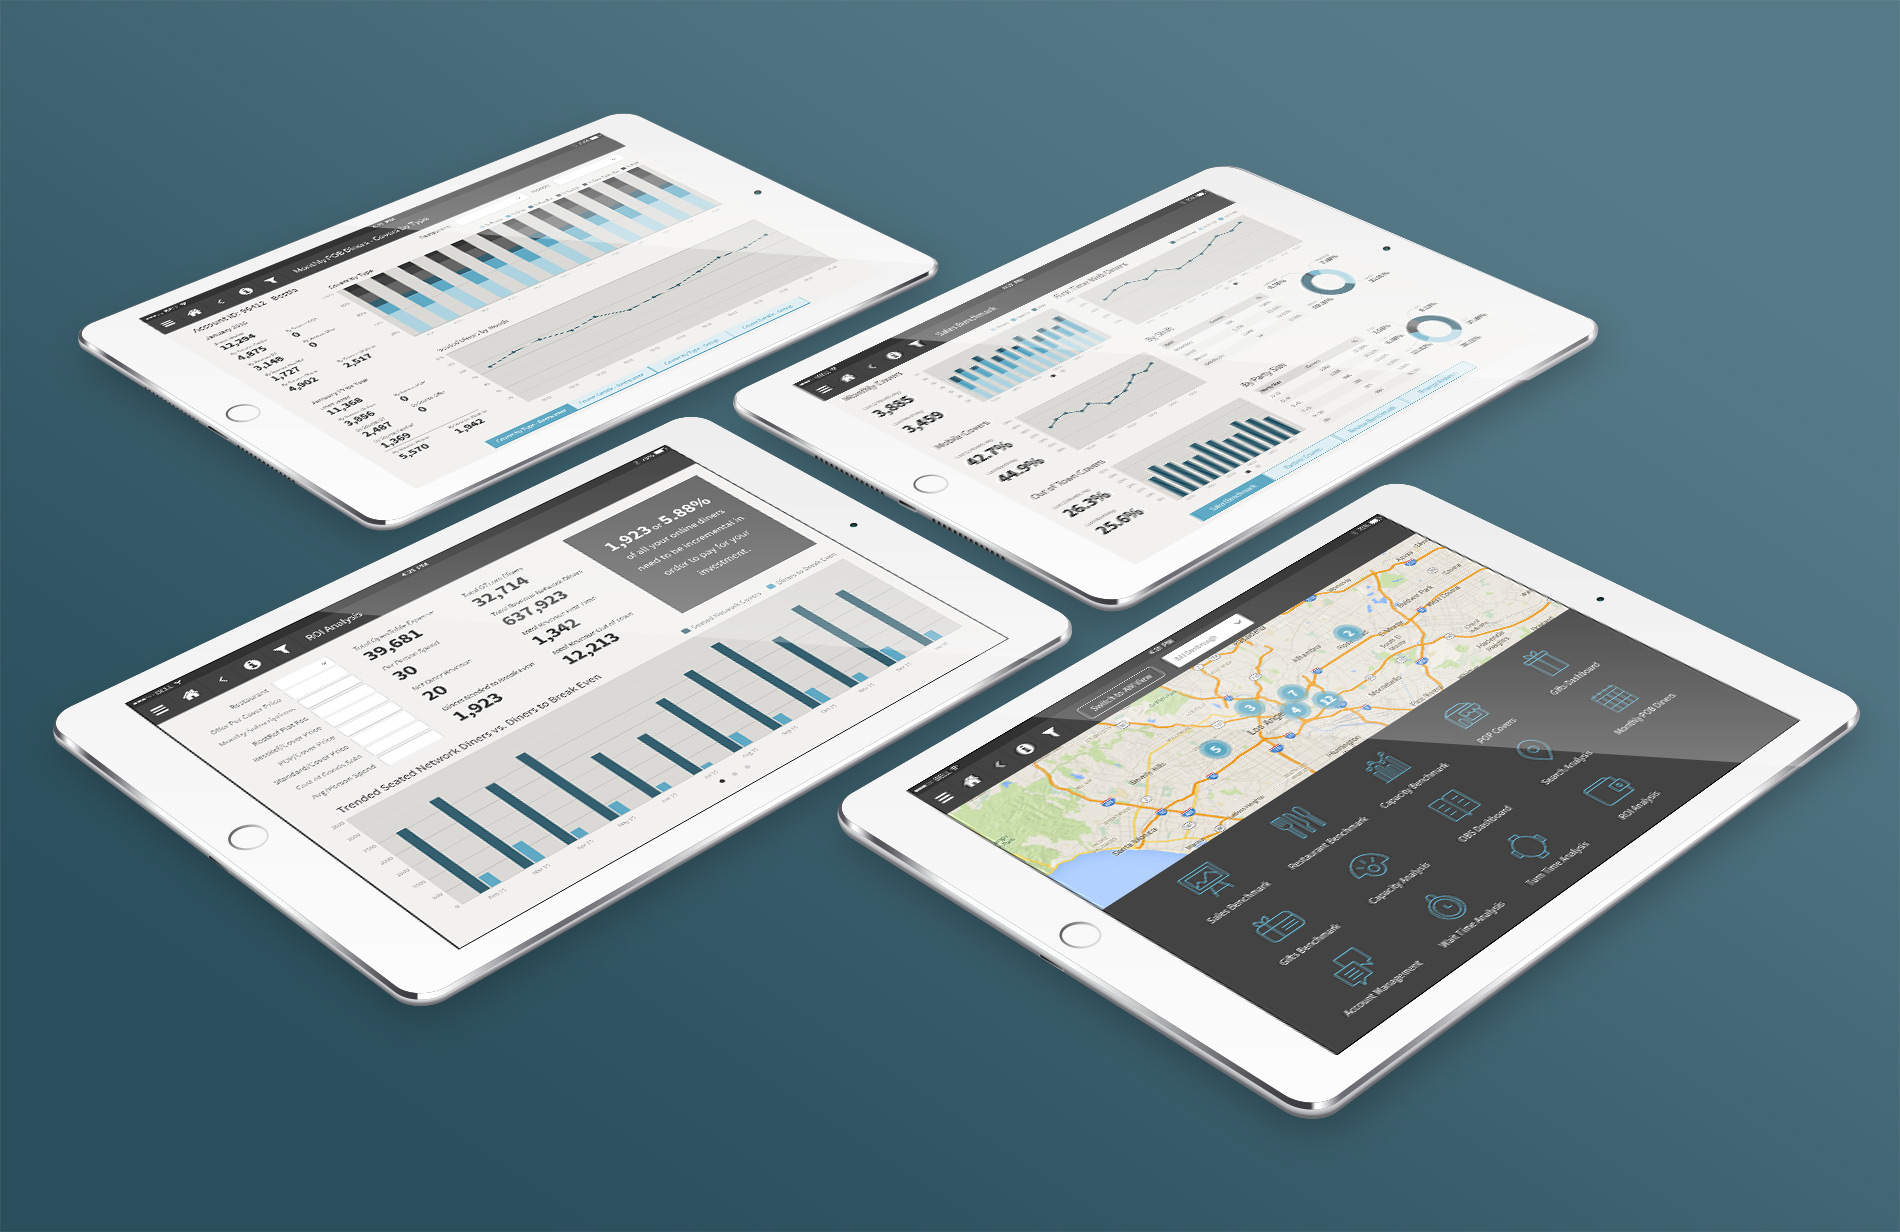 UI/UX design for a mobile analytics tool for an online reservation service